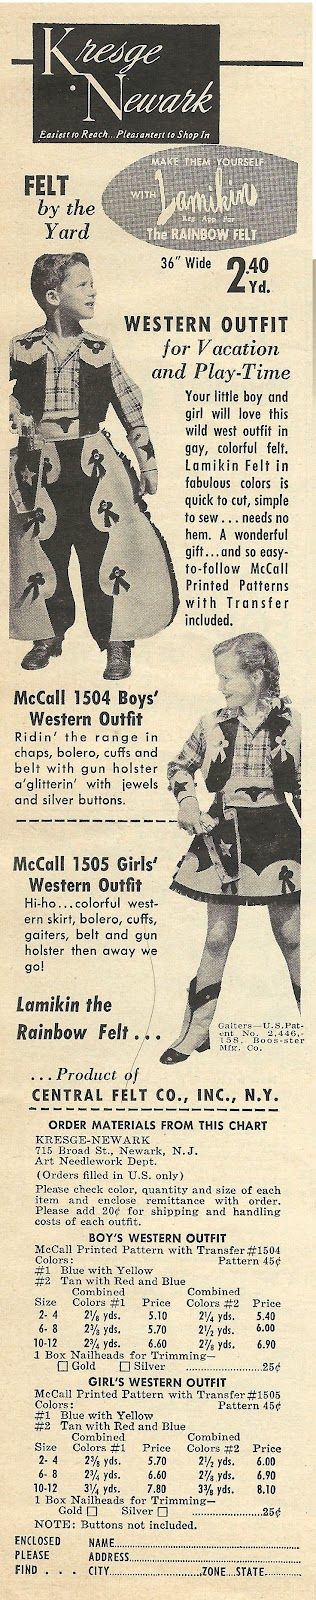 1950 ad: Western Outfit for kids; MawMaw shopped at Kresges either on Jefferson that next street over #westernoutfits